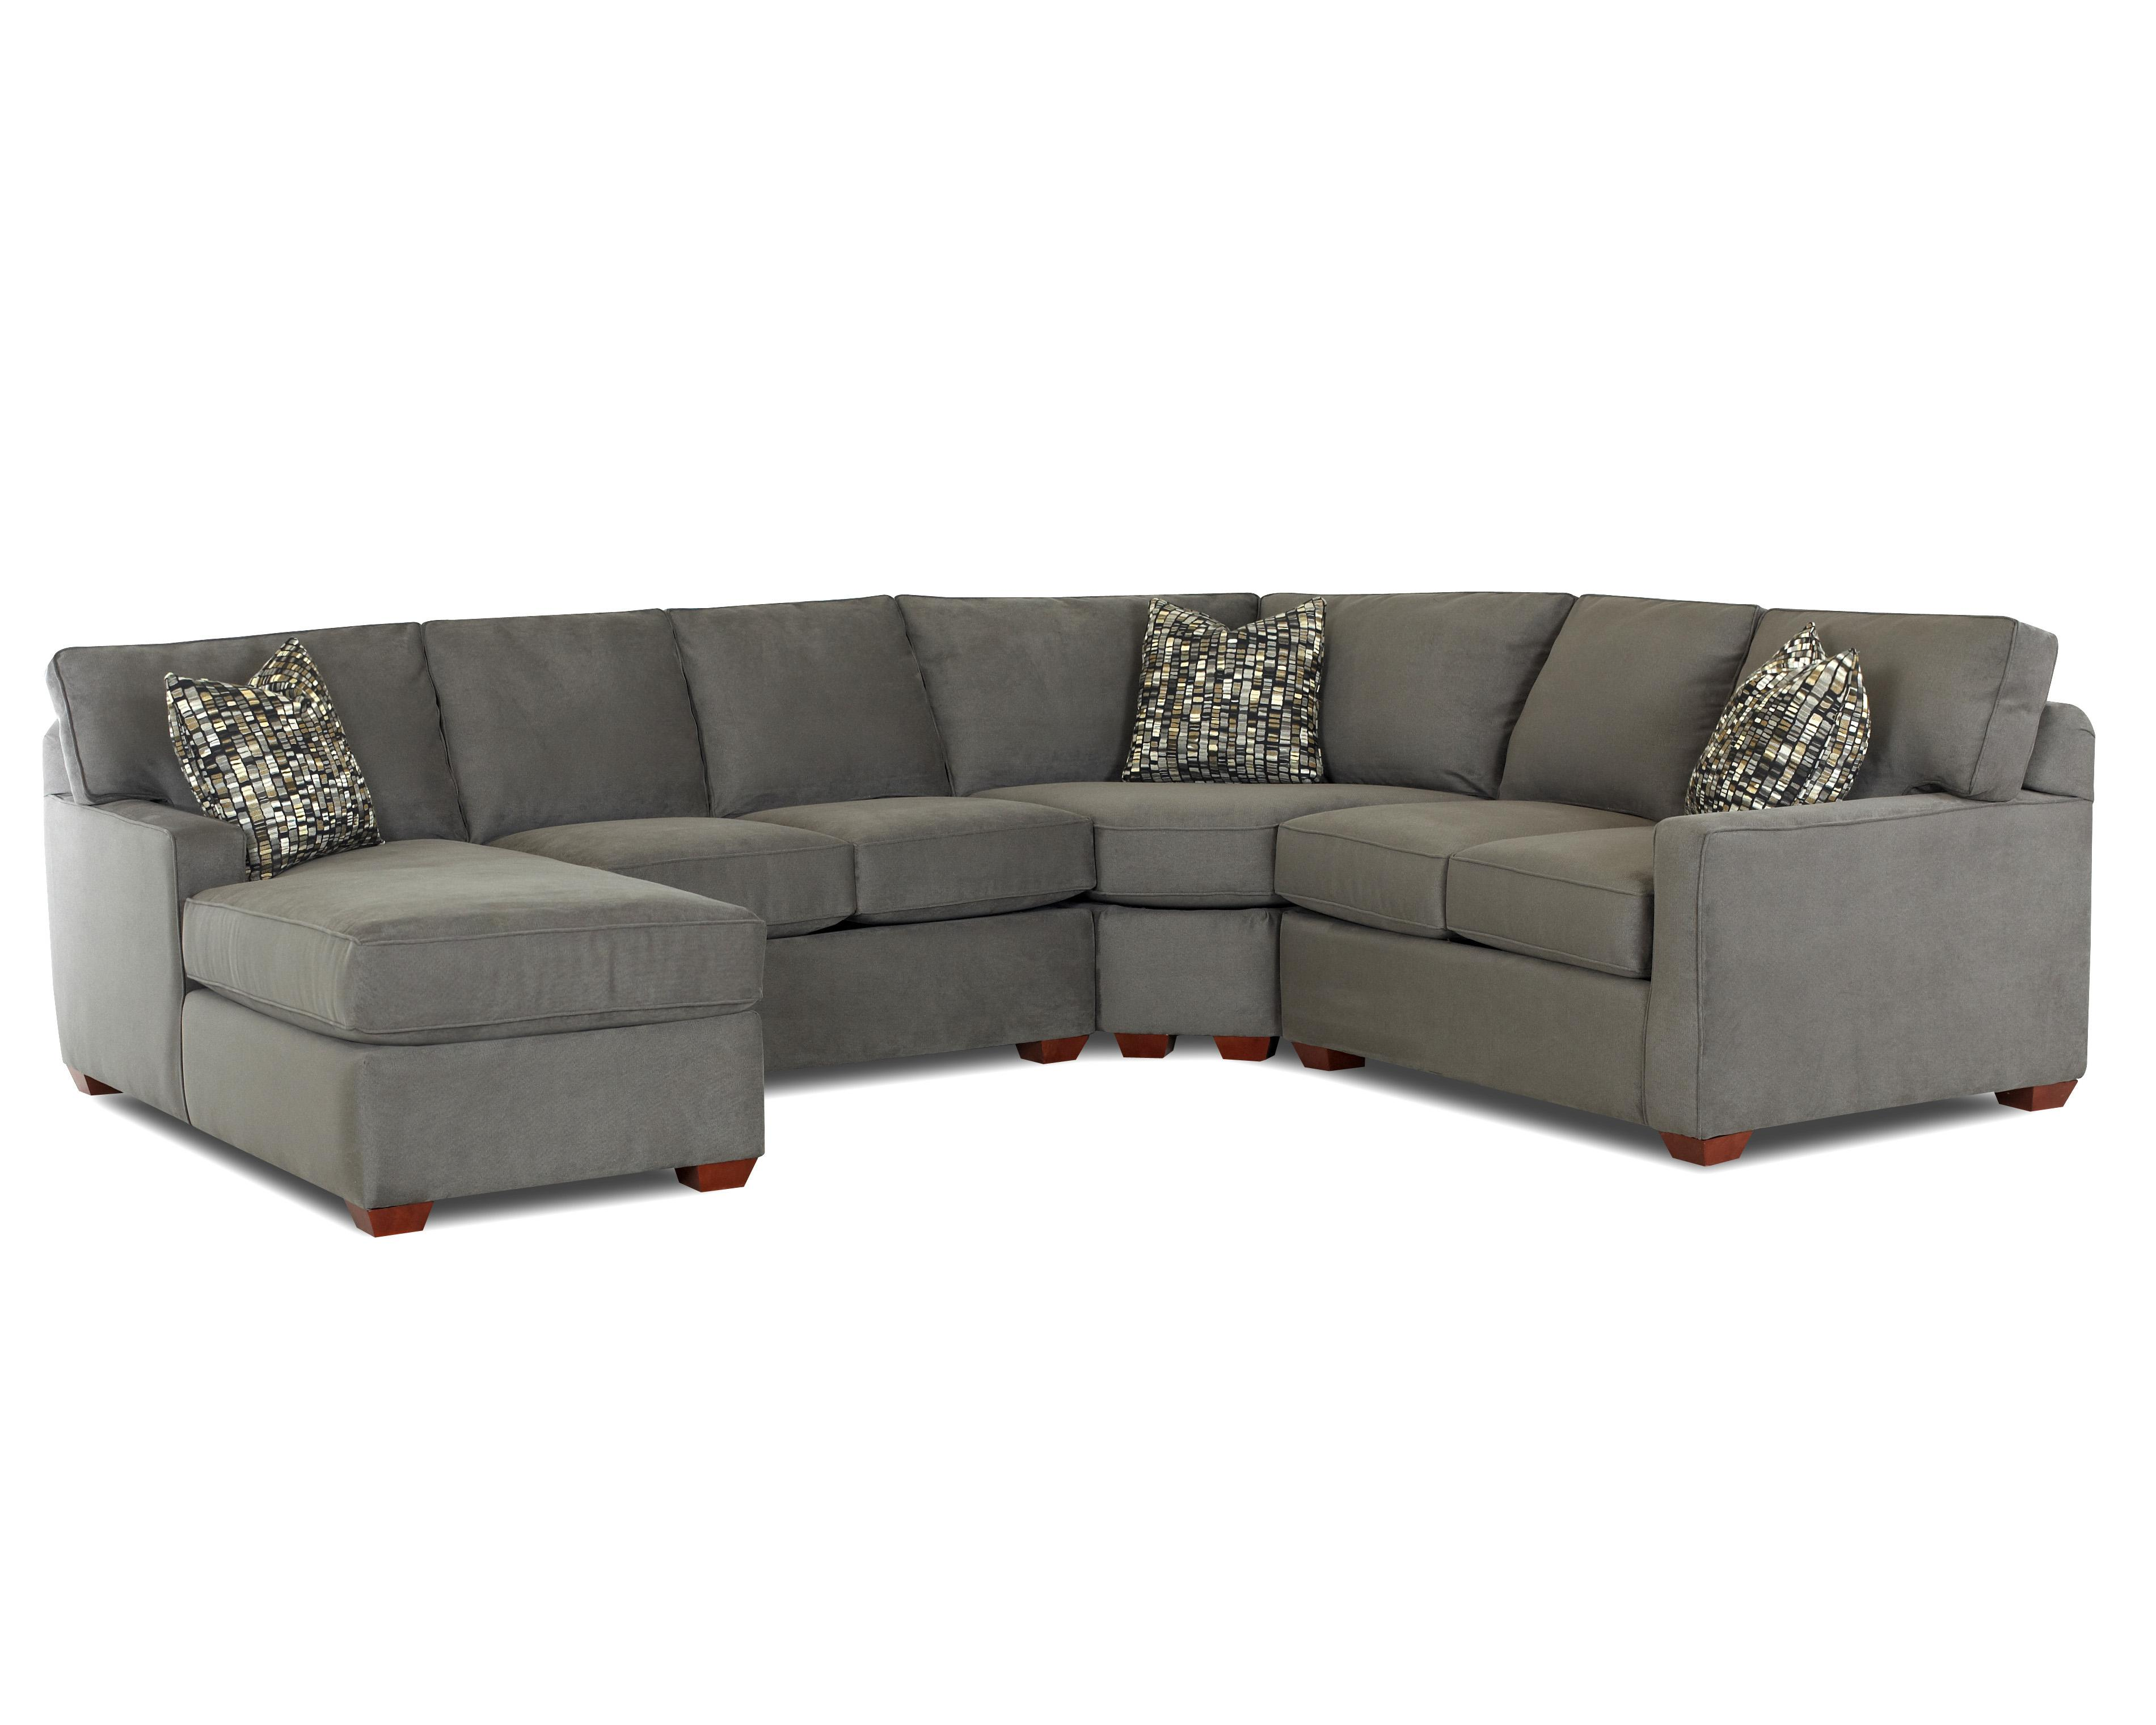 Klaussner Selection Contemporary L Shaped Sectional Sofa with Left